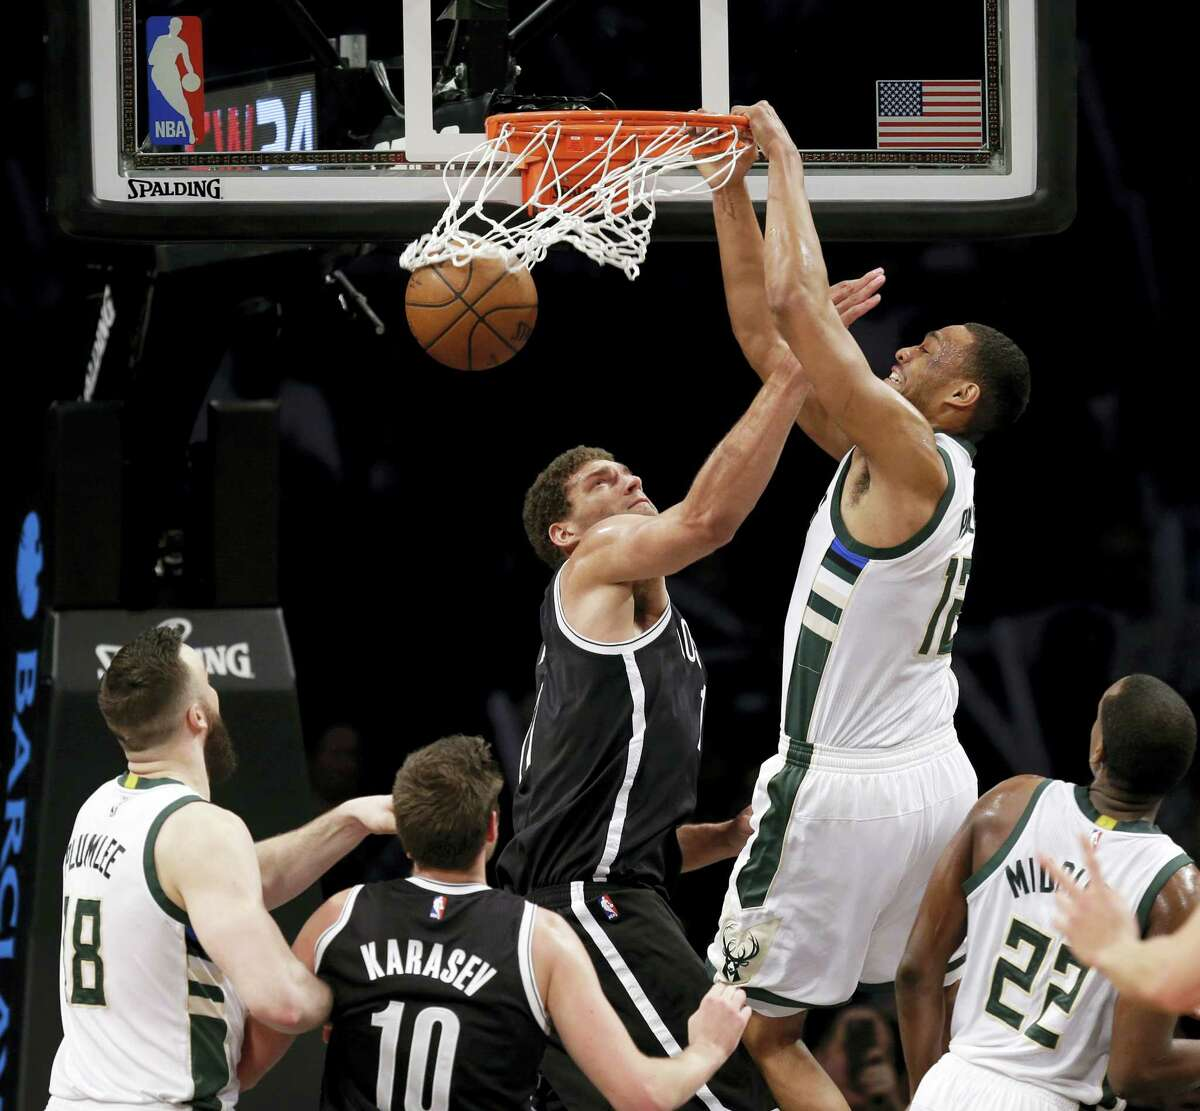 Milwaukee Bucks' Jabari Parker, second from right, dunks over Brooklyn Nets' Brook Lopez, third from left, during the second half of the NBA basketball game at the Barclays Center, Sunday, March 13, 2016 in New York. The Bucks defeated the Nets 109-100. (AP Photo/Seth Wenig)